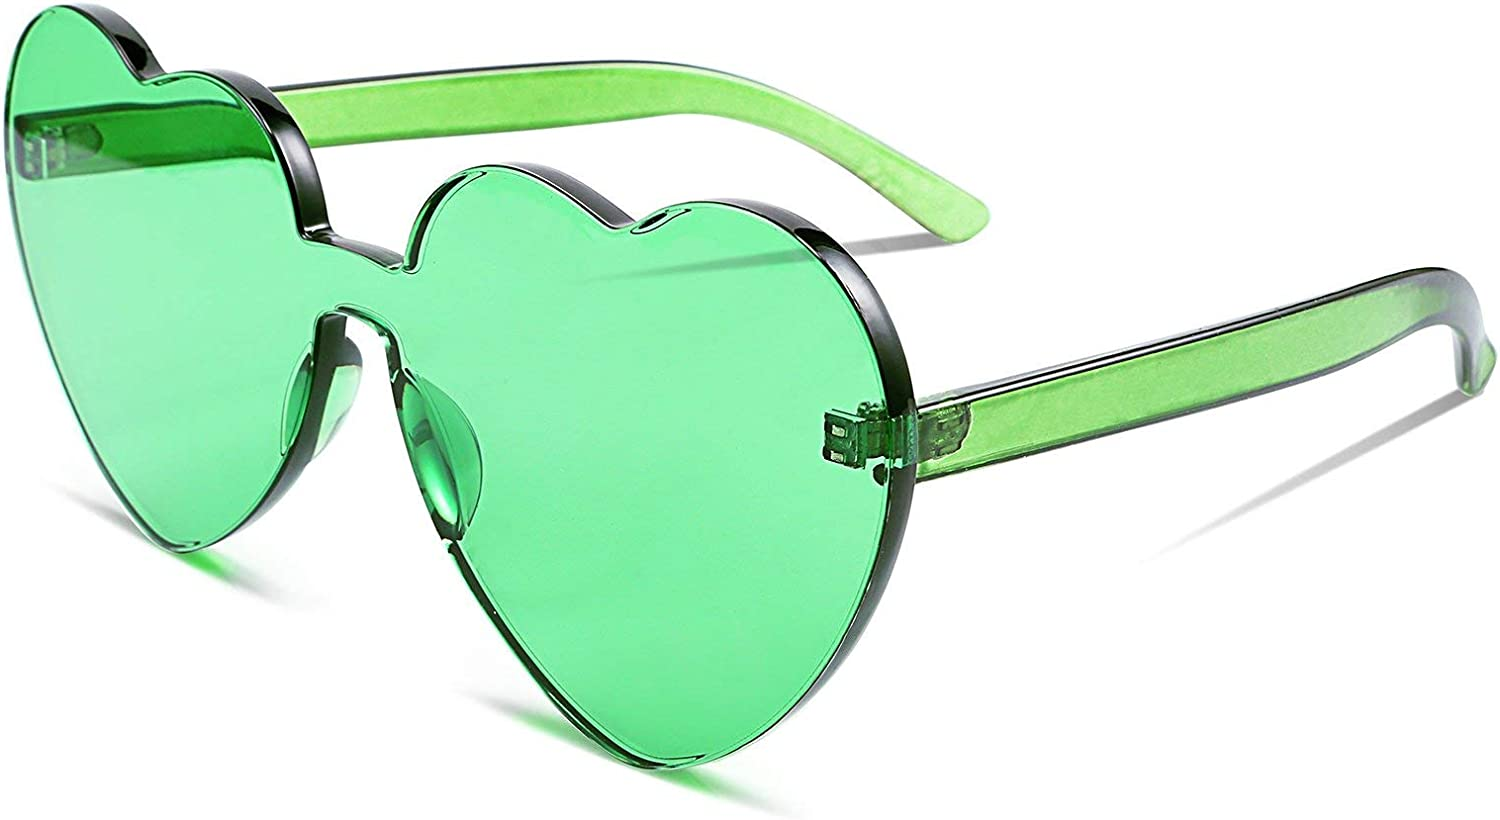 FEISEDY Price reduction Rimless Heart Shaped Sunglasses Women Piece Fashion One Los Angeles Mall